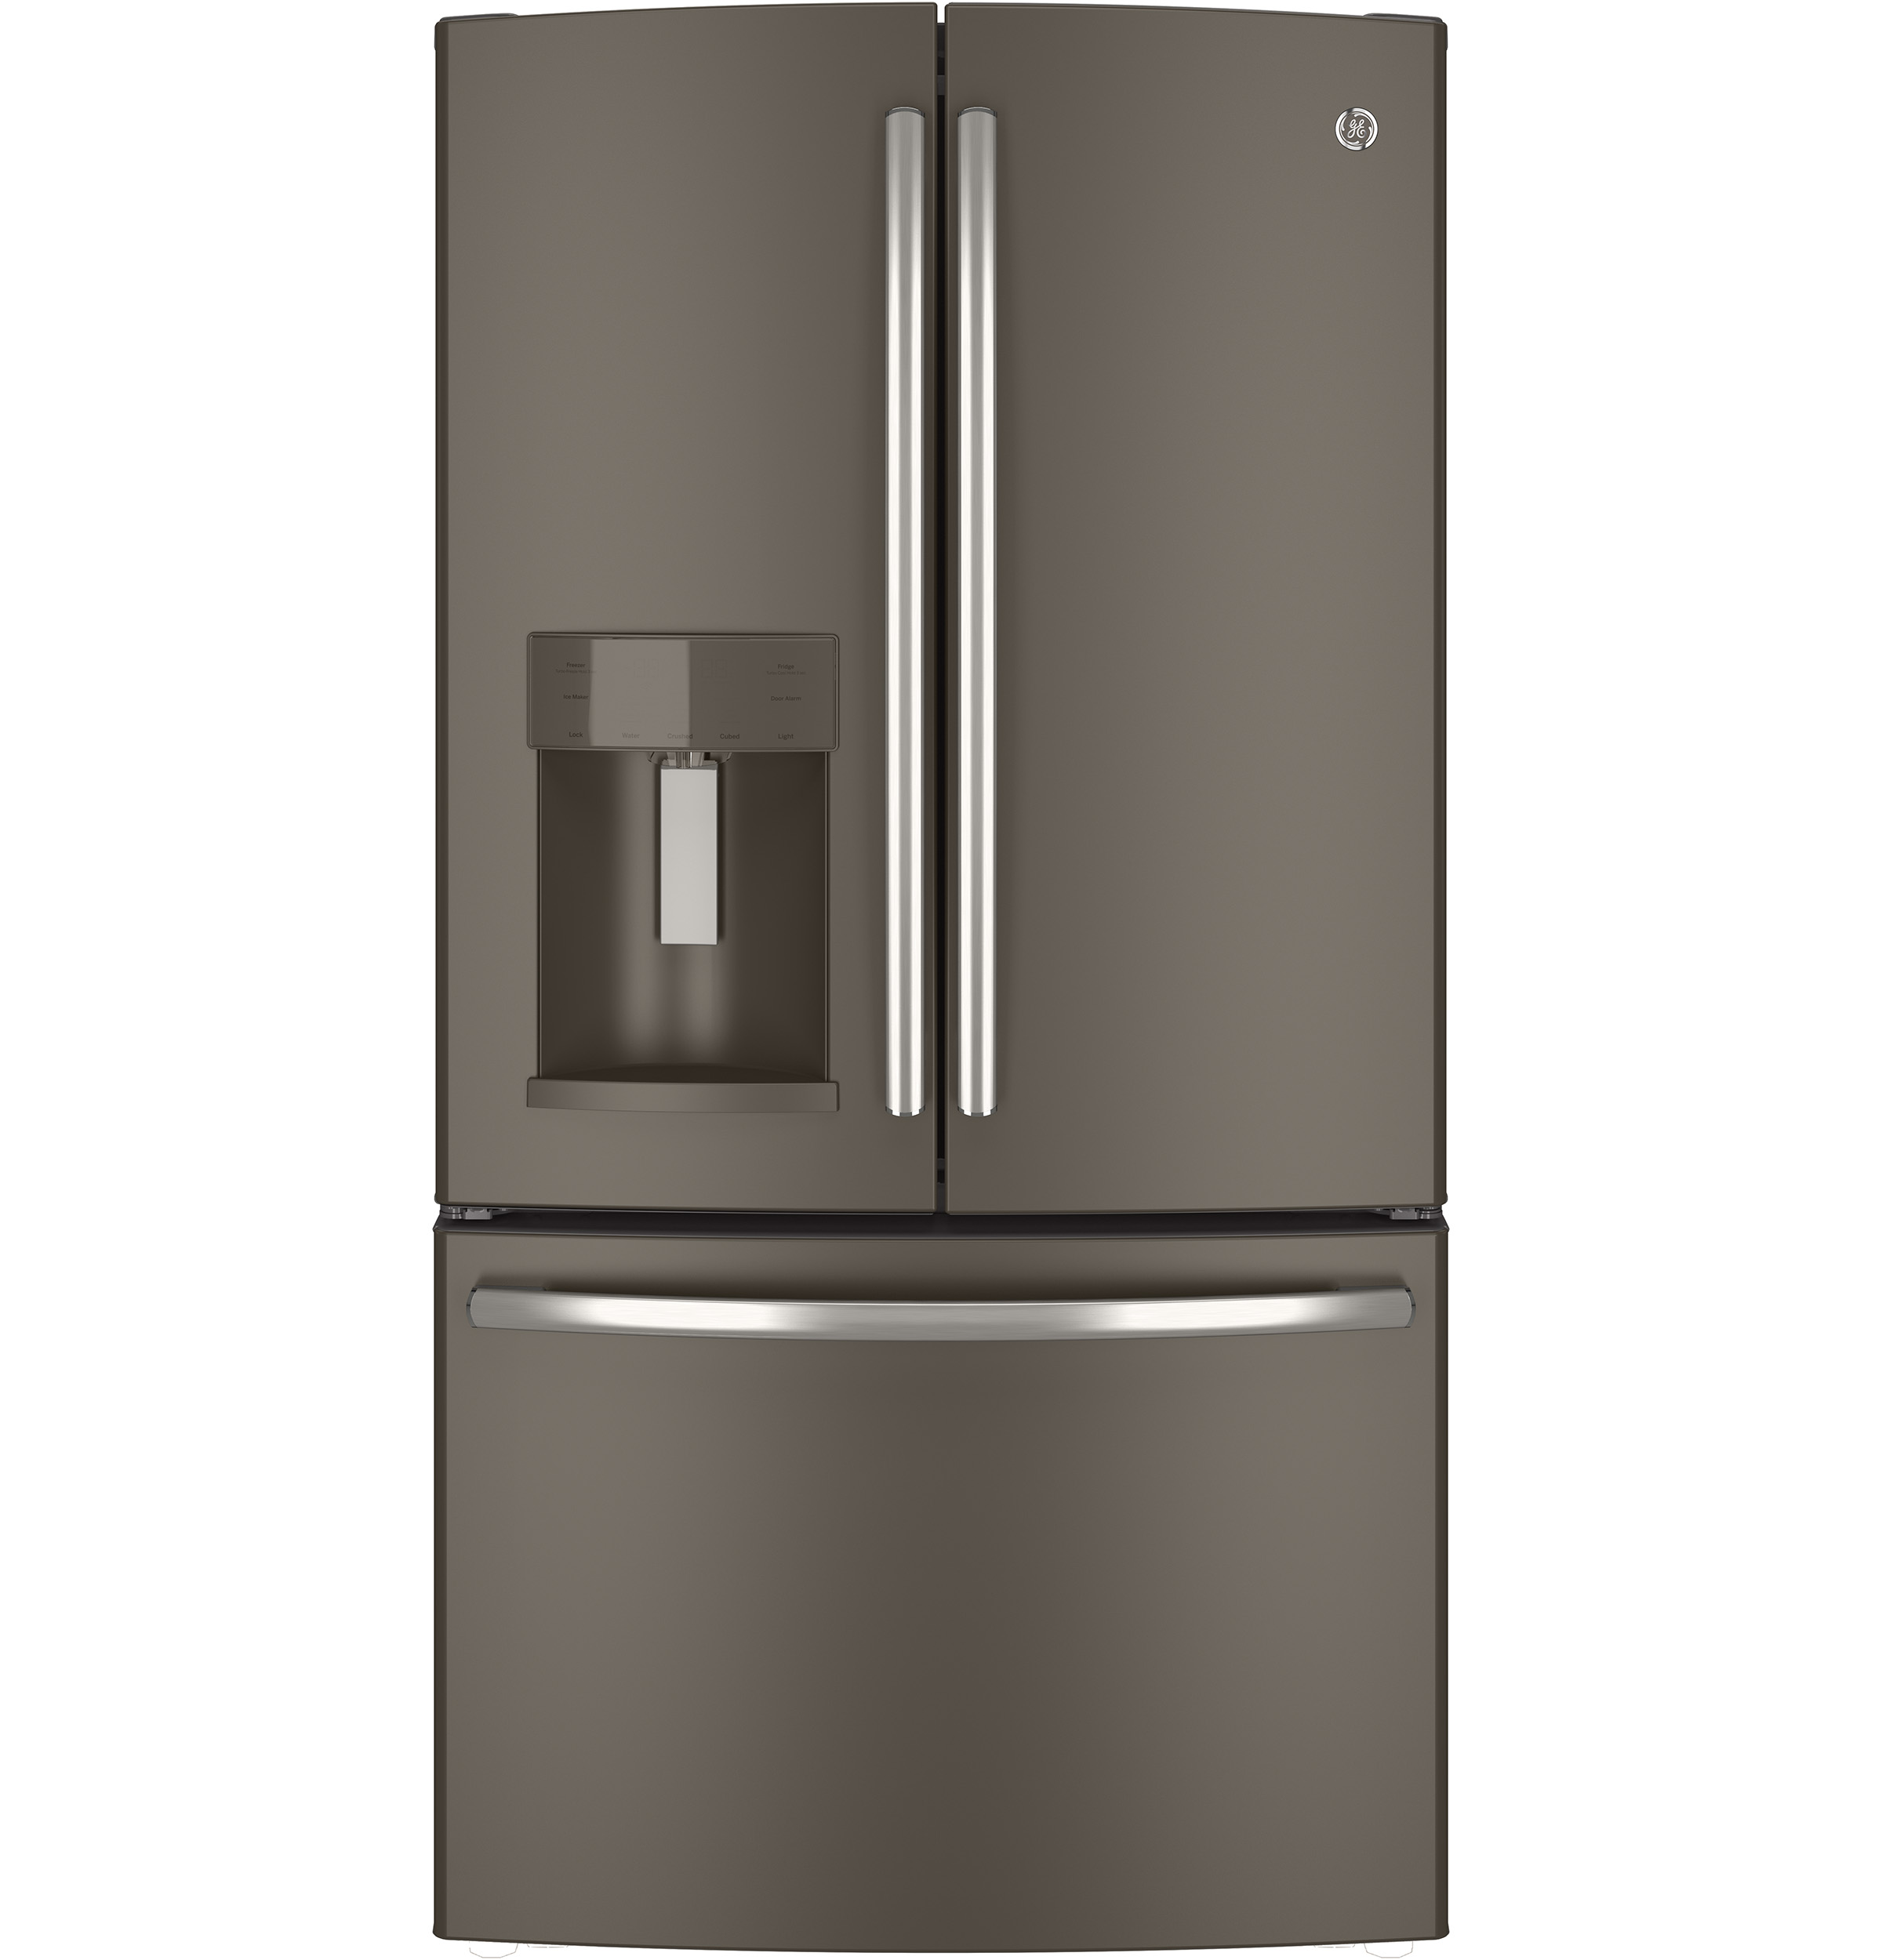 Ge Energy Star 277 Cu Ft French Door Refrigerator Gfe28hmhes How To Read Wiring Diagrams For Appliances Product Image